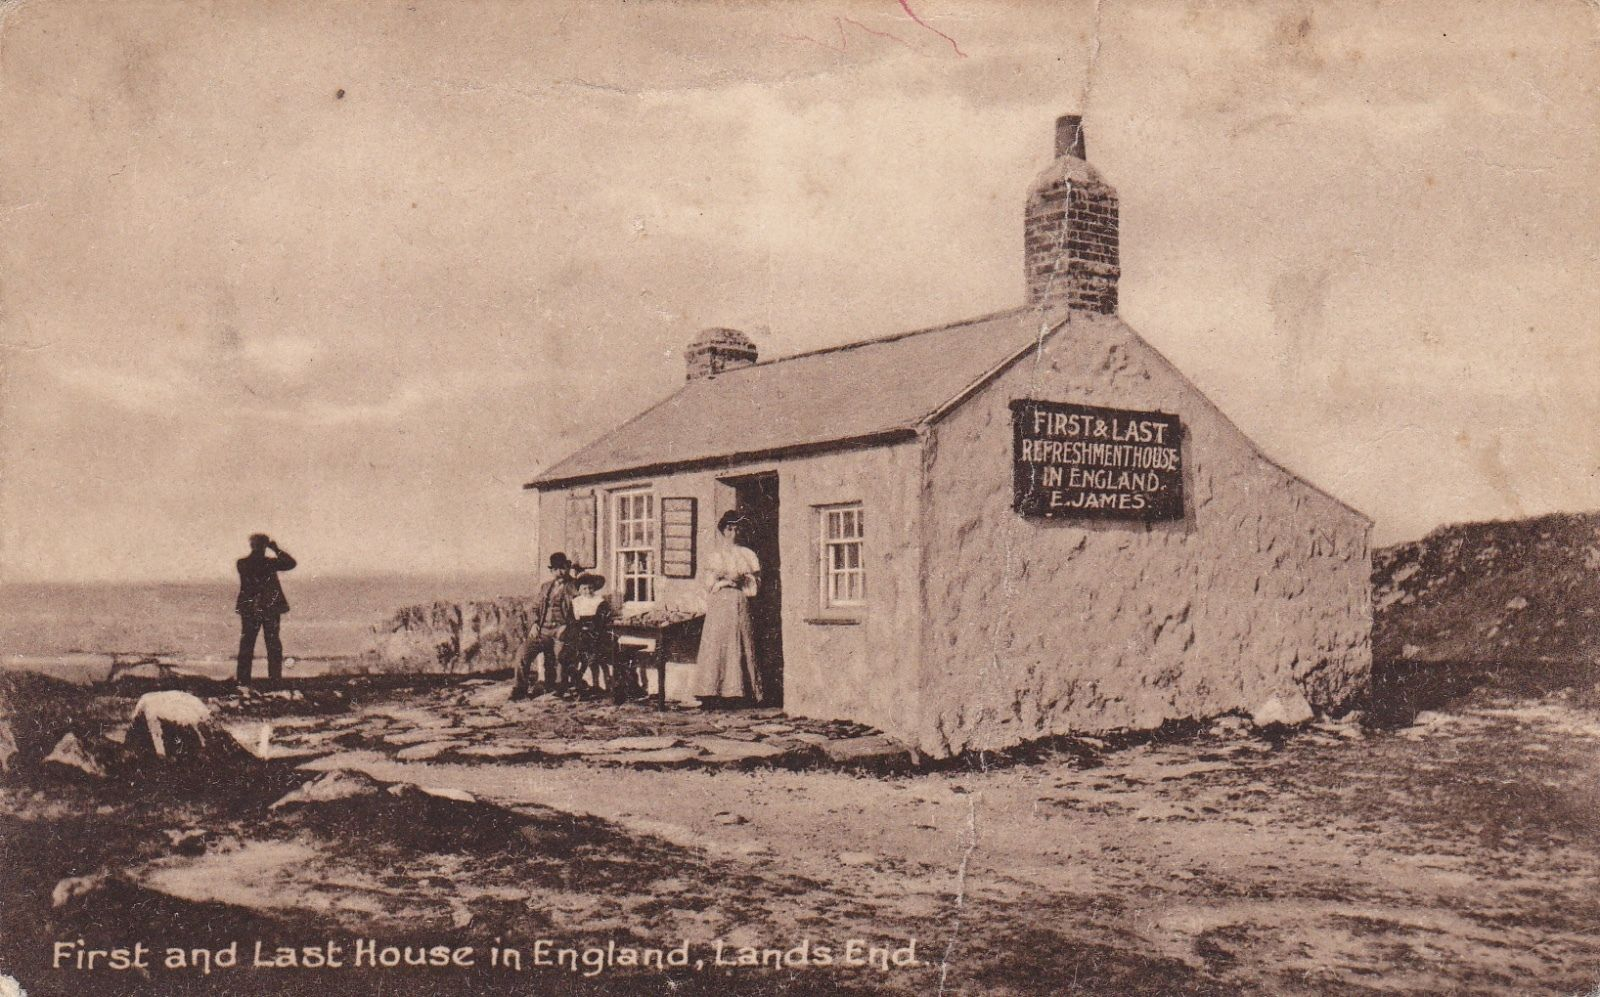 lands-end-first-last-refreshment-house-in